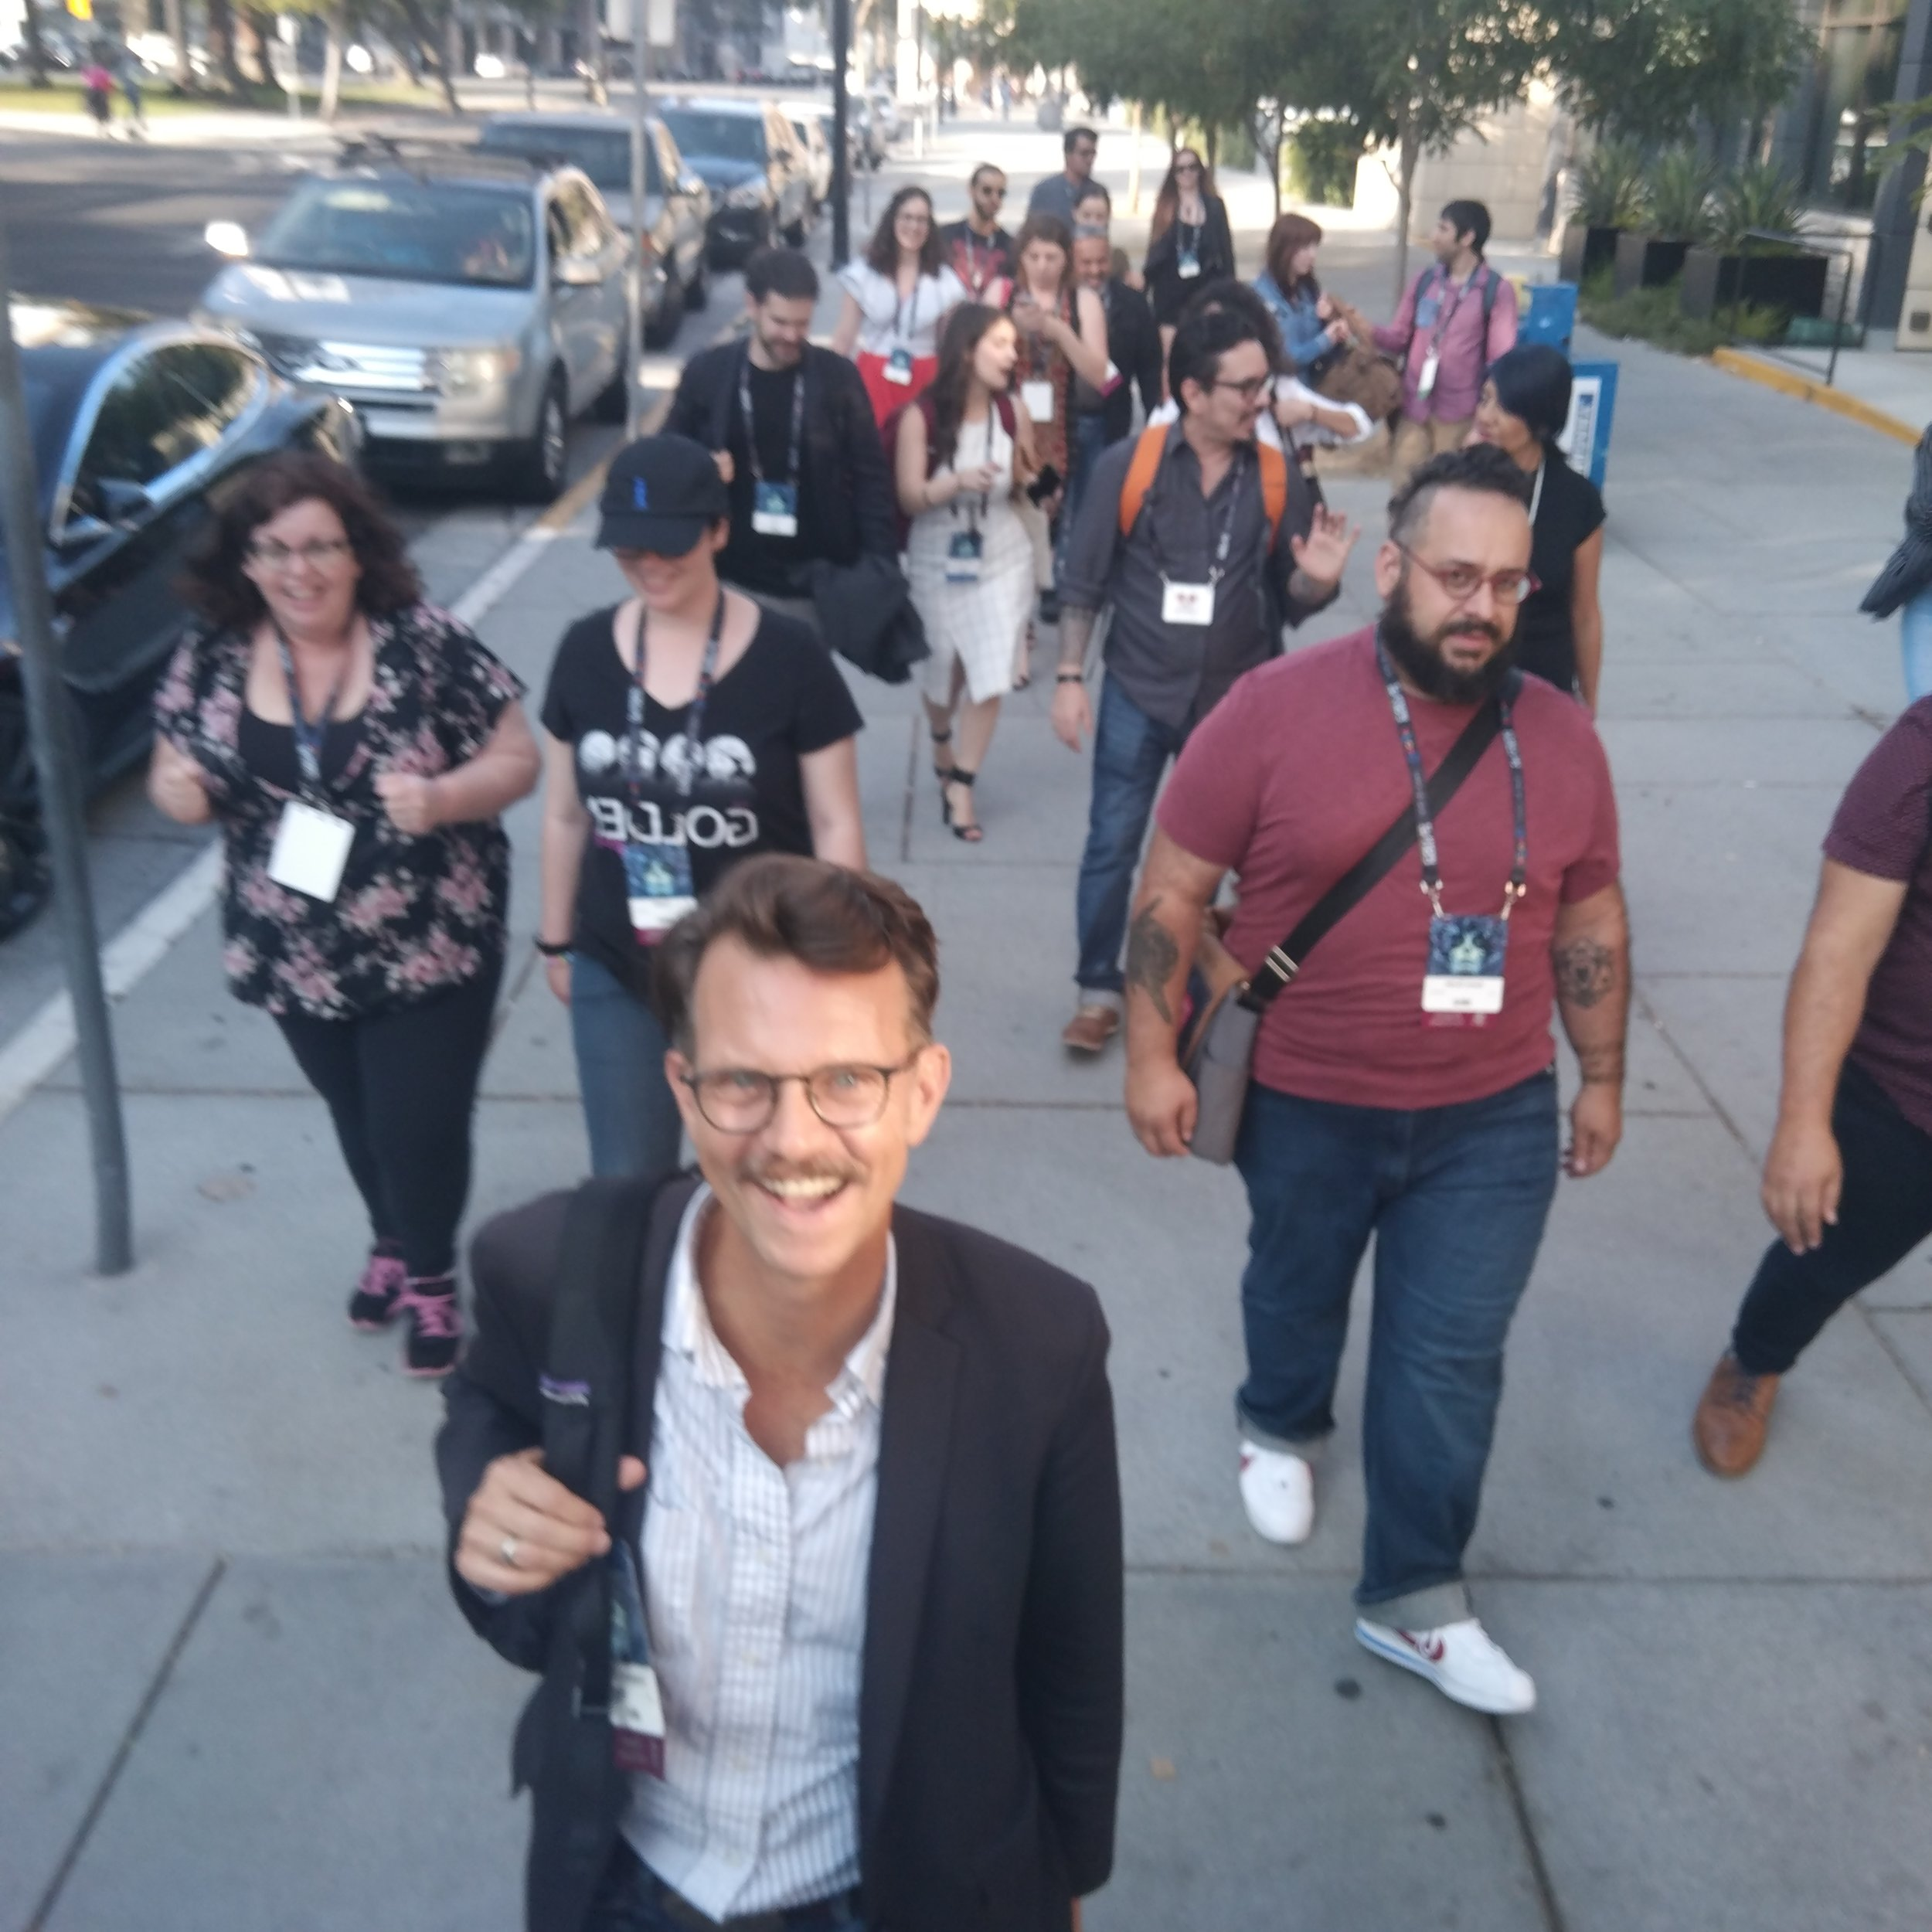 Chris N. Brown and a group of Mexicanx Initiative participants walking on the sidewalk in San Jose